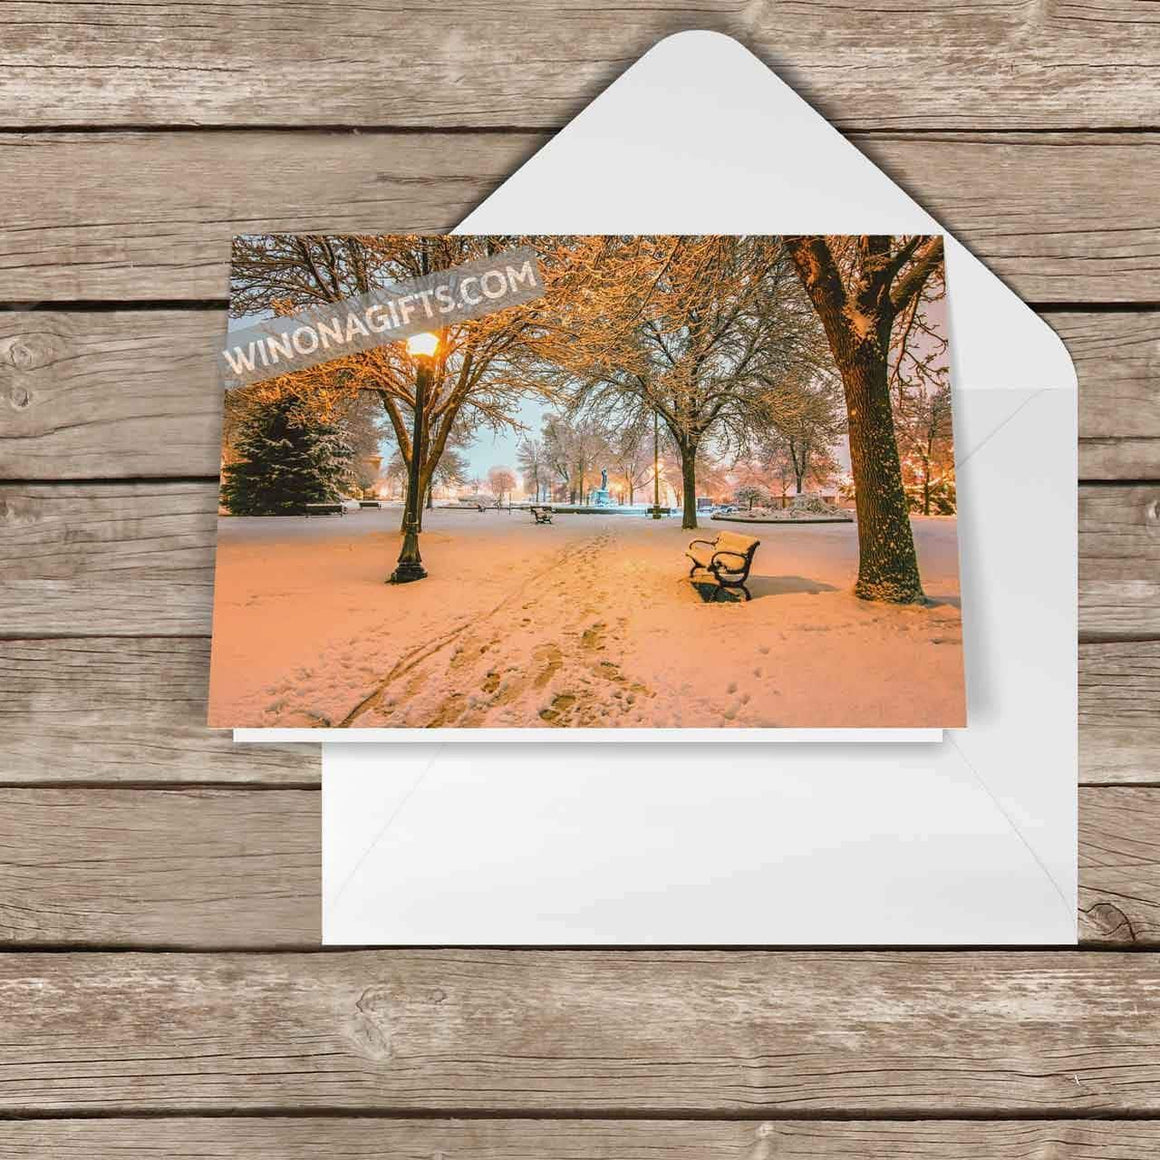 Winona Christmas Card Snowy Path to Wenonah, 1-pack or 5-pack - Kari Yearous Photography KetoLaughs